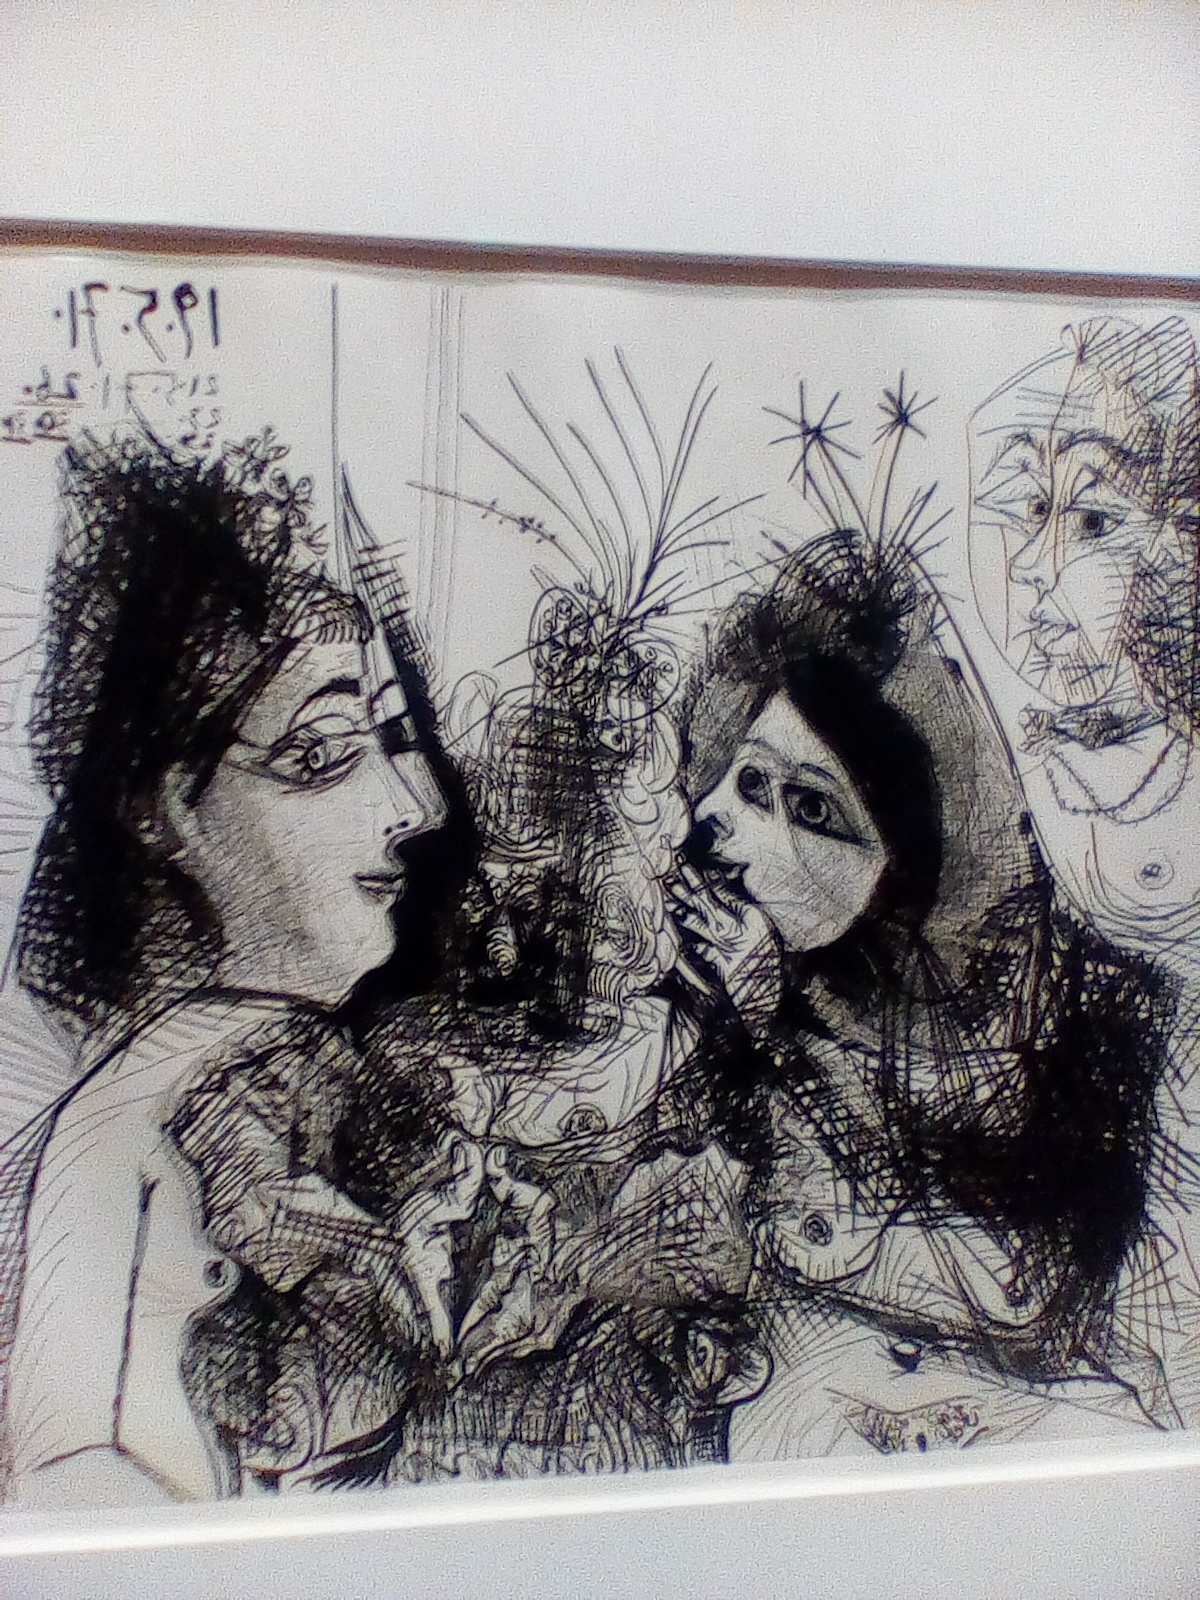 Picasso and Calder on